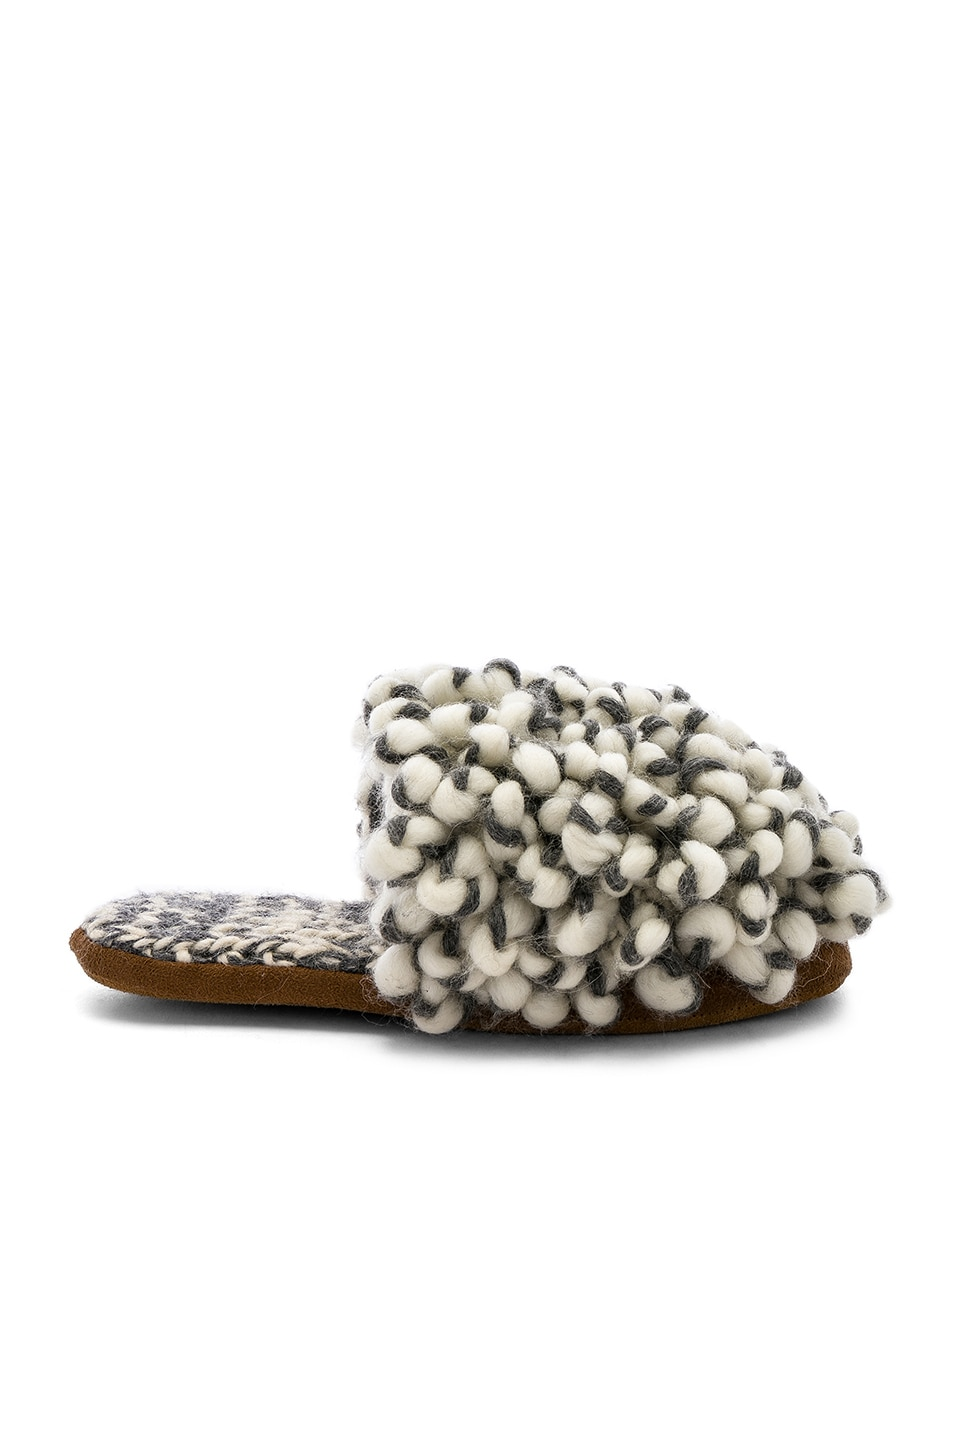 ARIANA BOHLING Loop Scuff Slipper in Gray